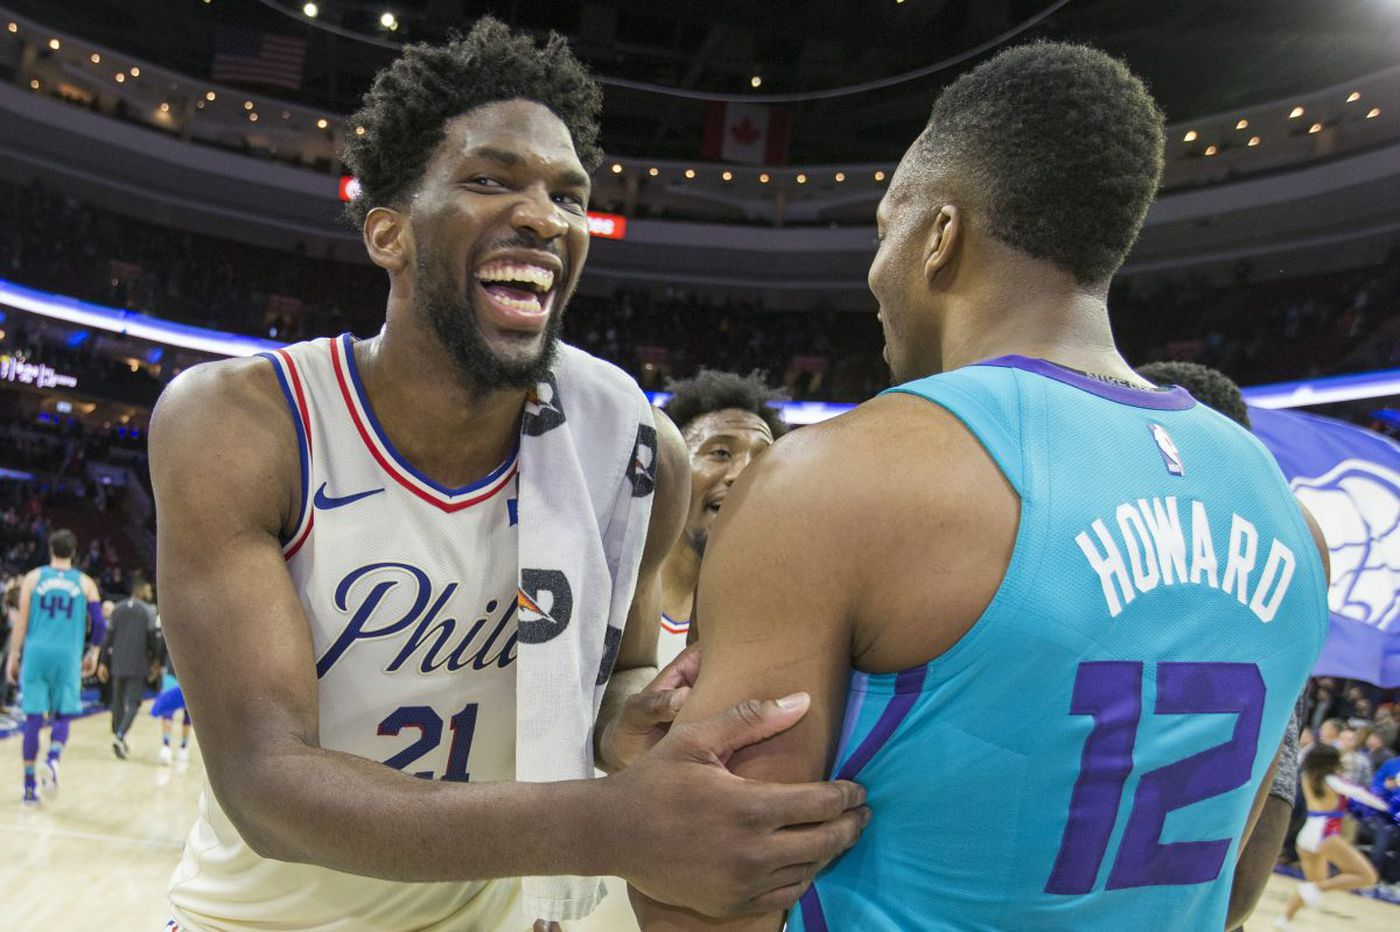 Sixers' Joel Embiid looks at NBA standings 'literally every day'